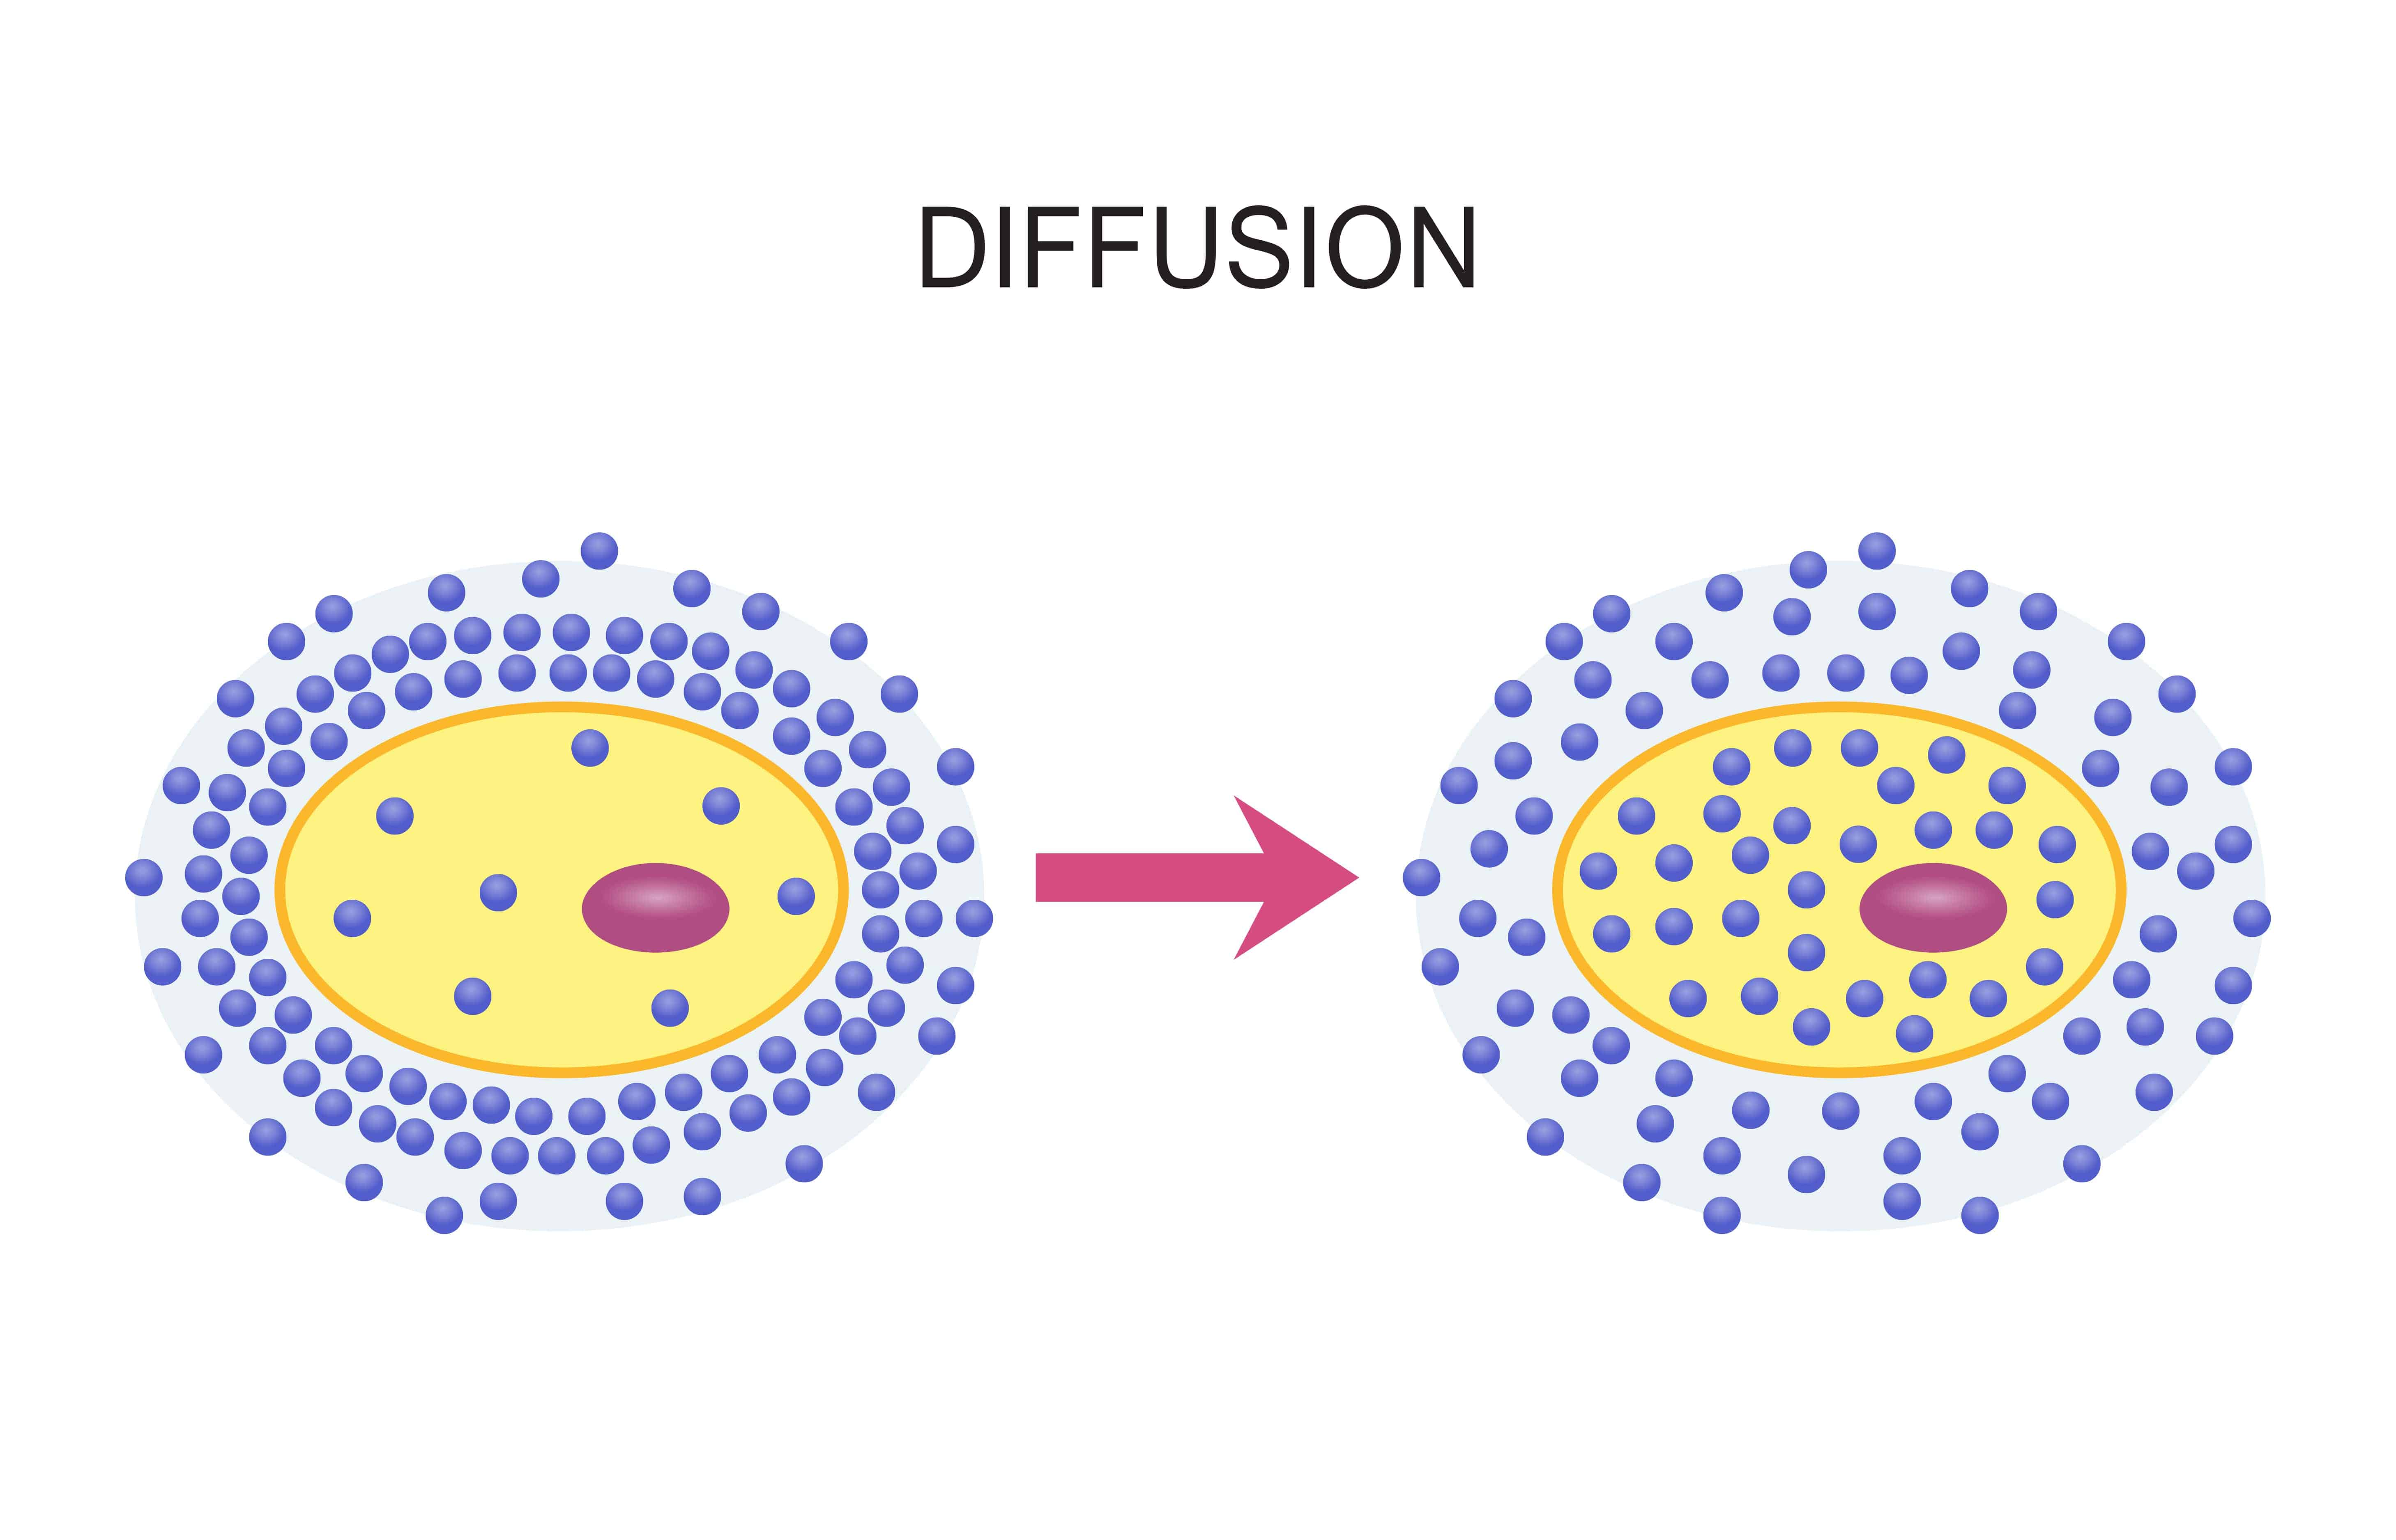 Illustration of diffusion on white background.